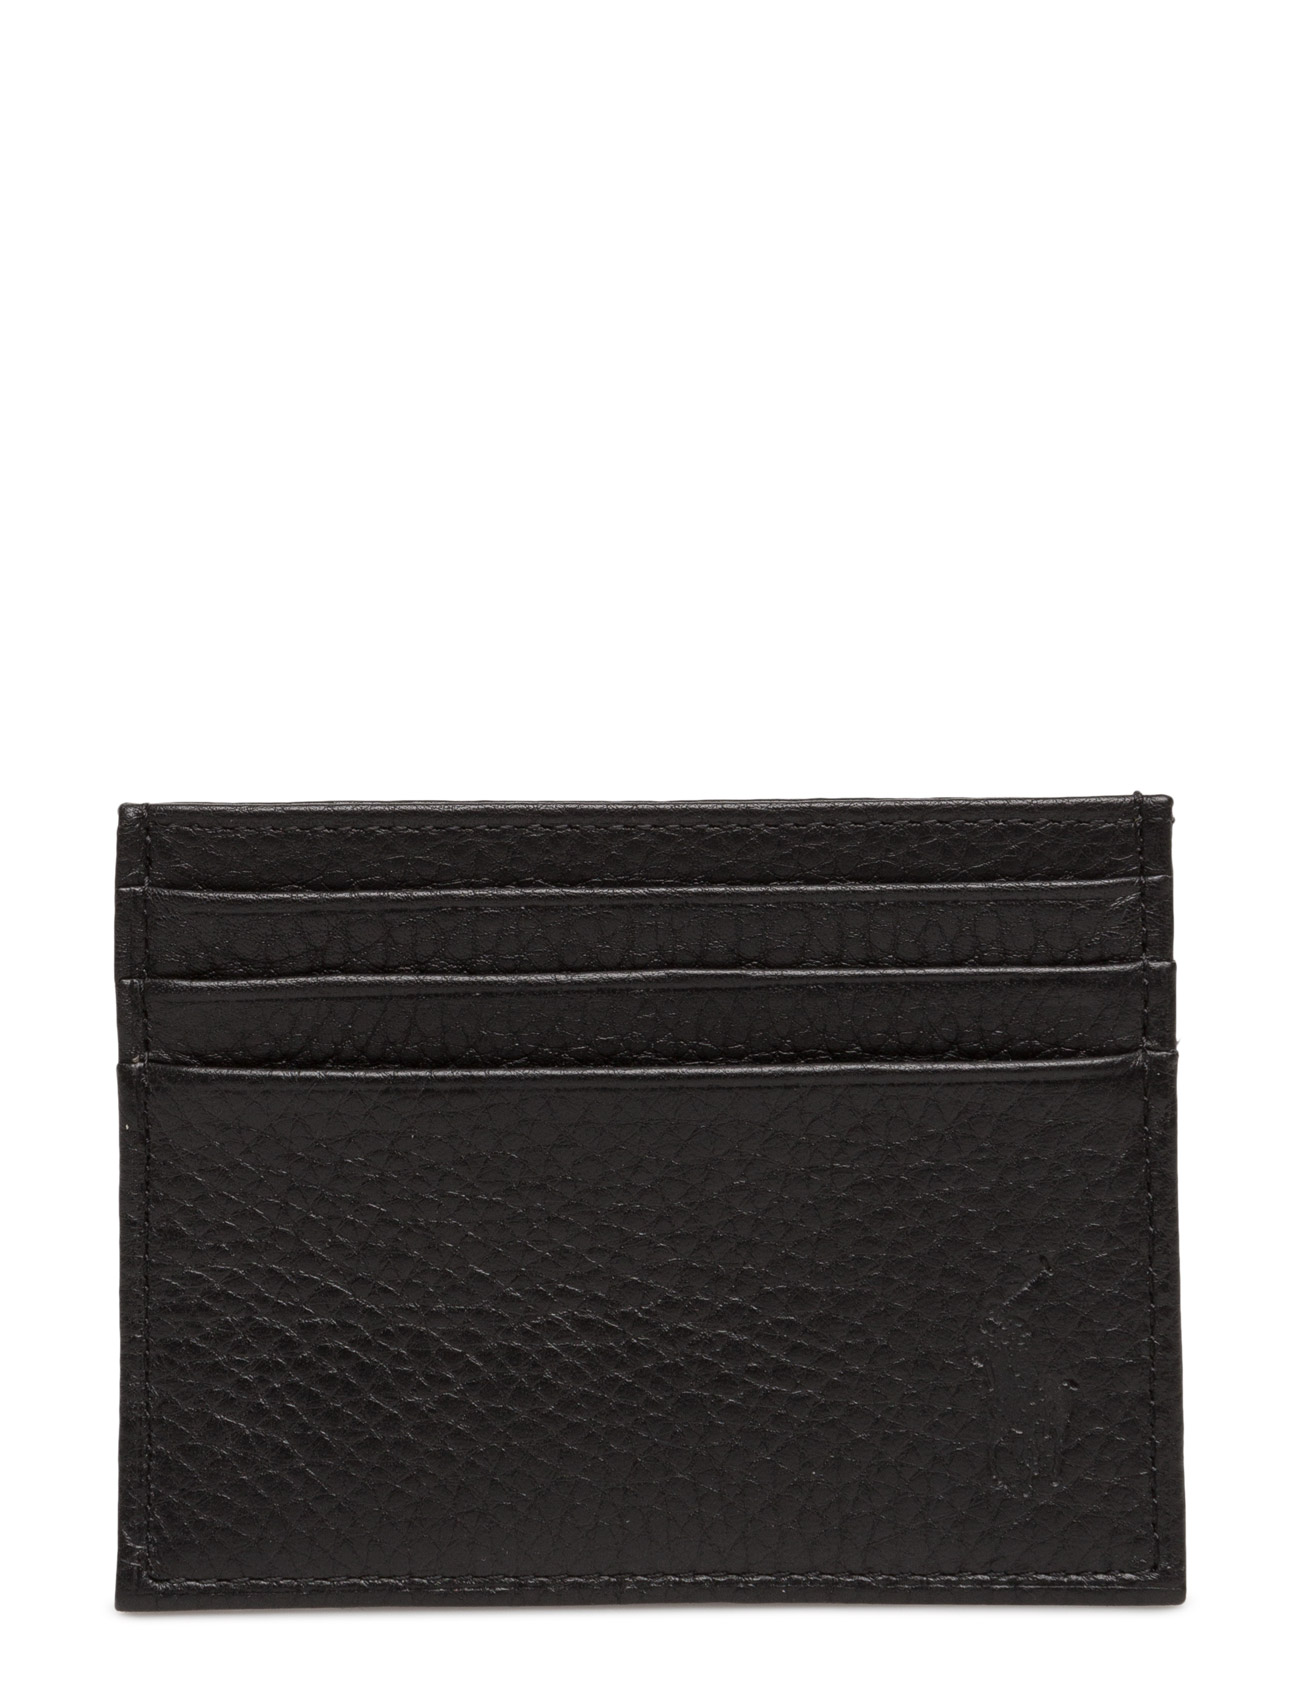 523865b88e07 Multi Card Case (Black) (£49) - Polo Ralph Lauren -